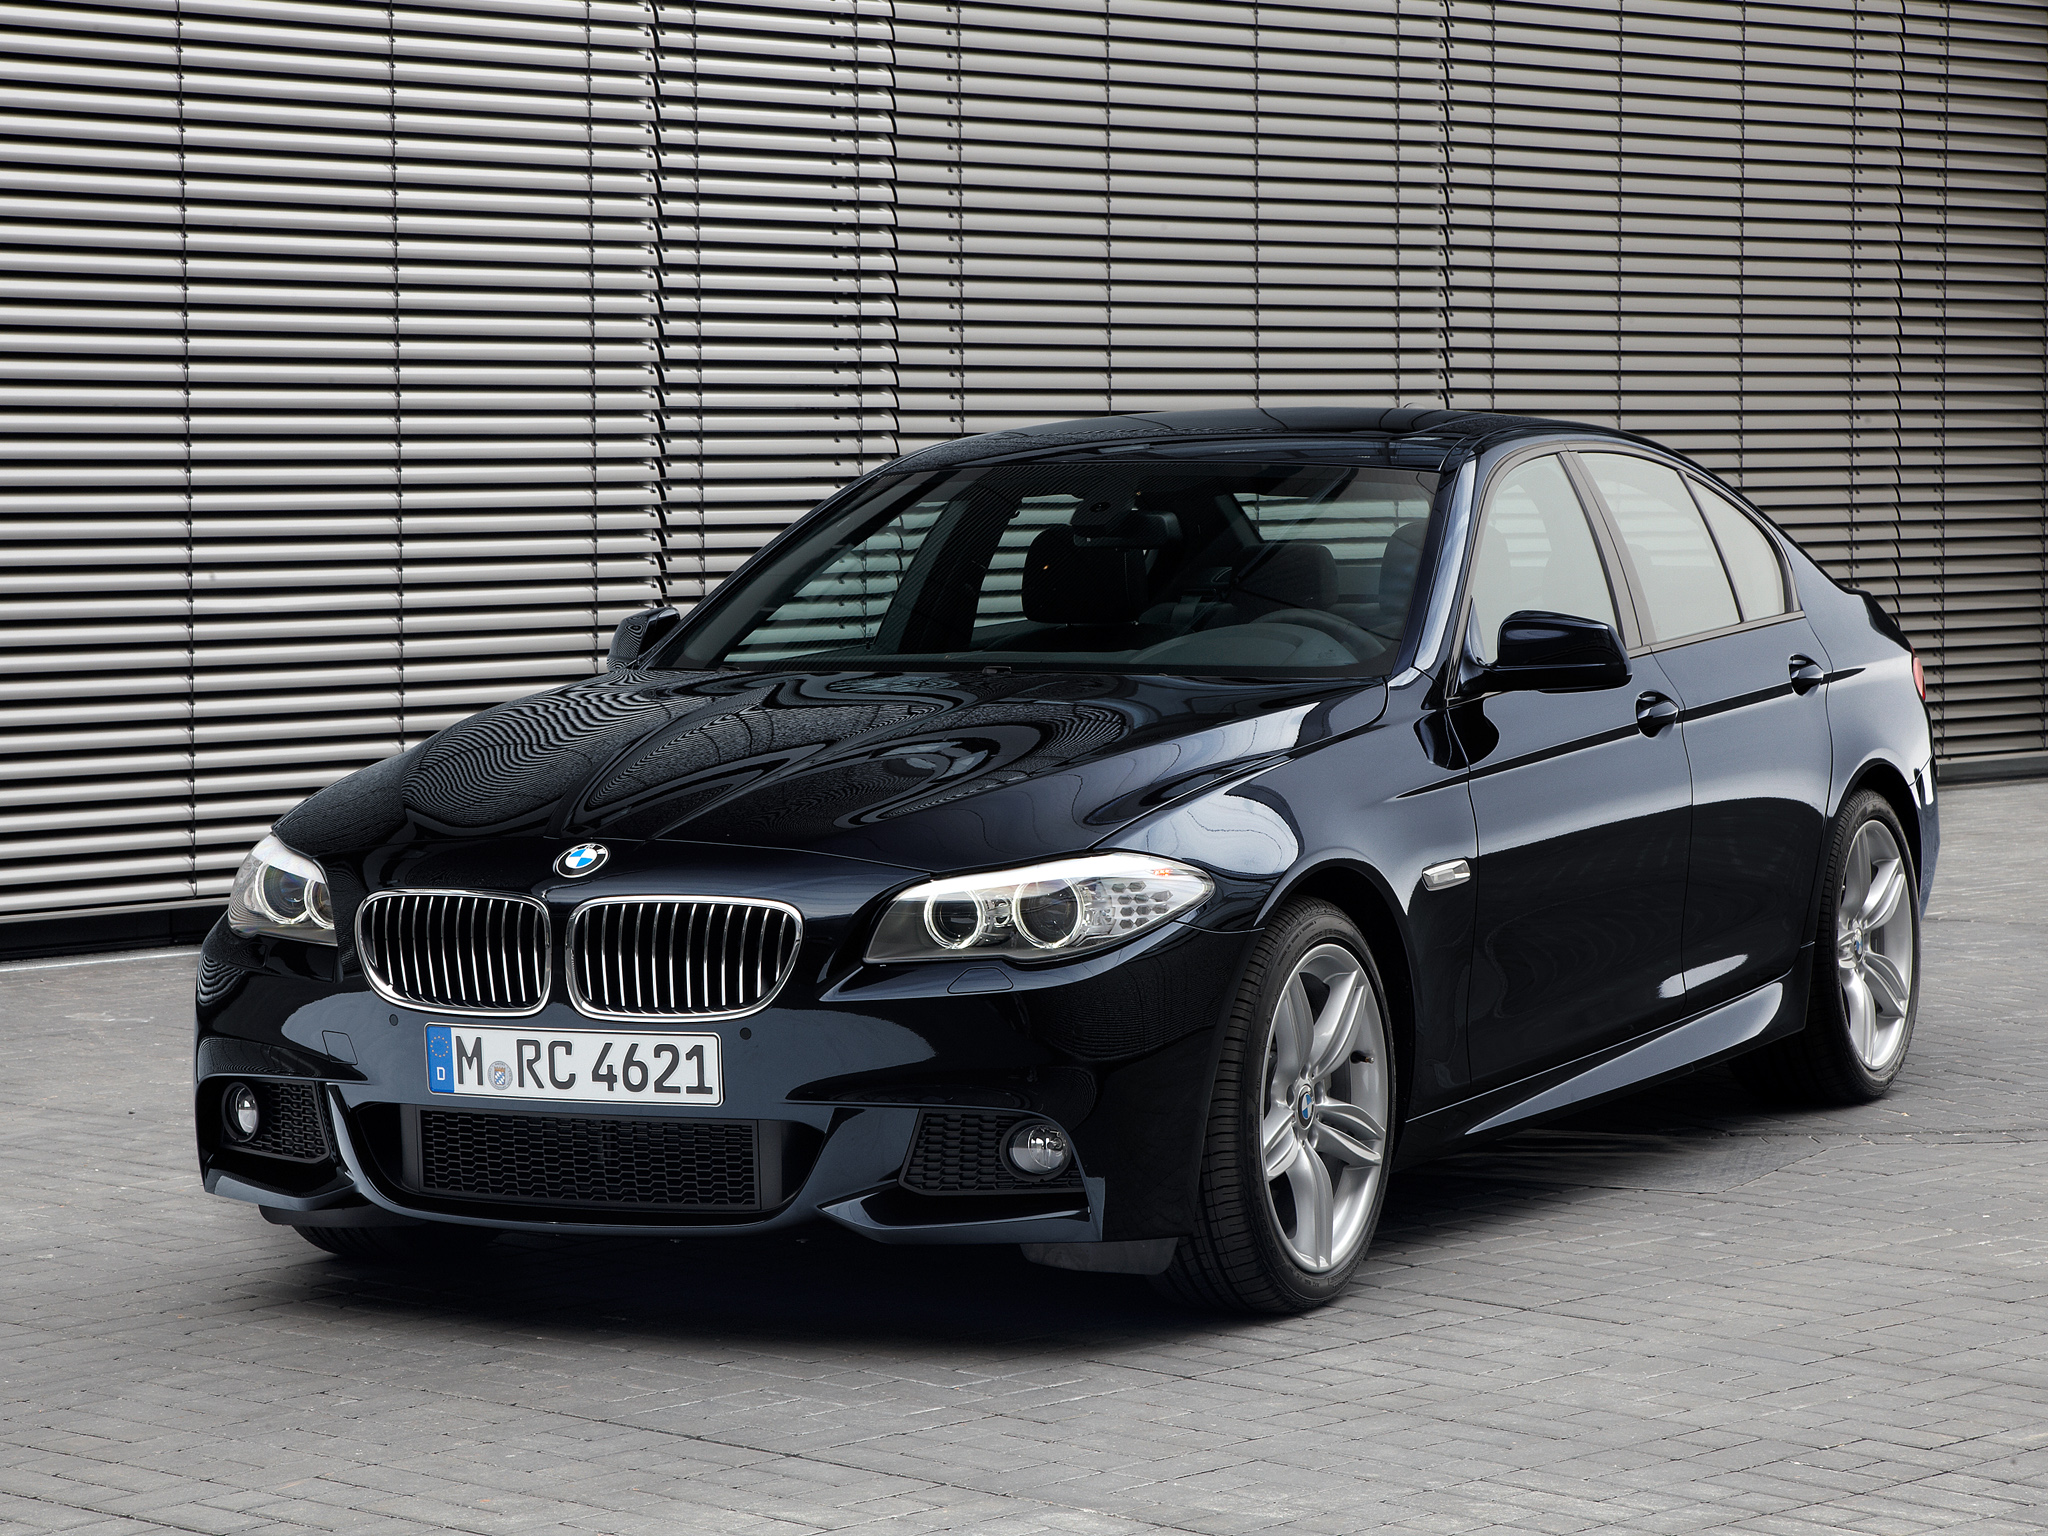 bmw 530 2015 review amazing pictures and images look at the car. Black Bedroom Furniture Sets. Home Design Ideas